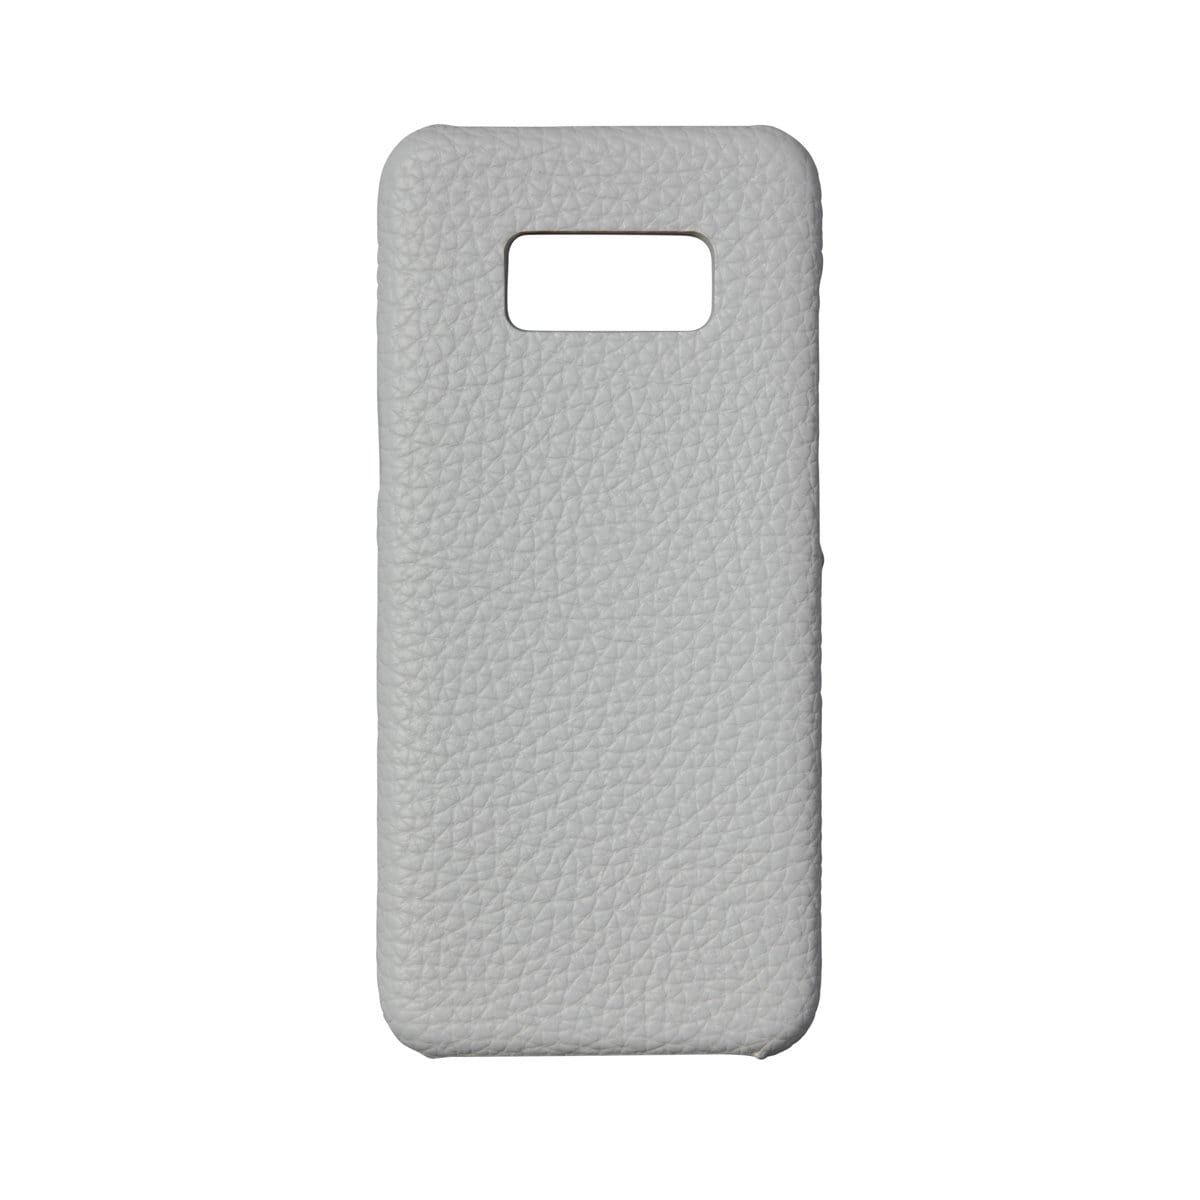 Parma Grey Phone Case (Samsung 8+)